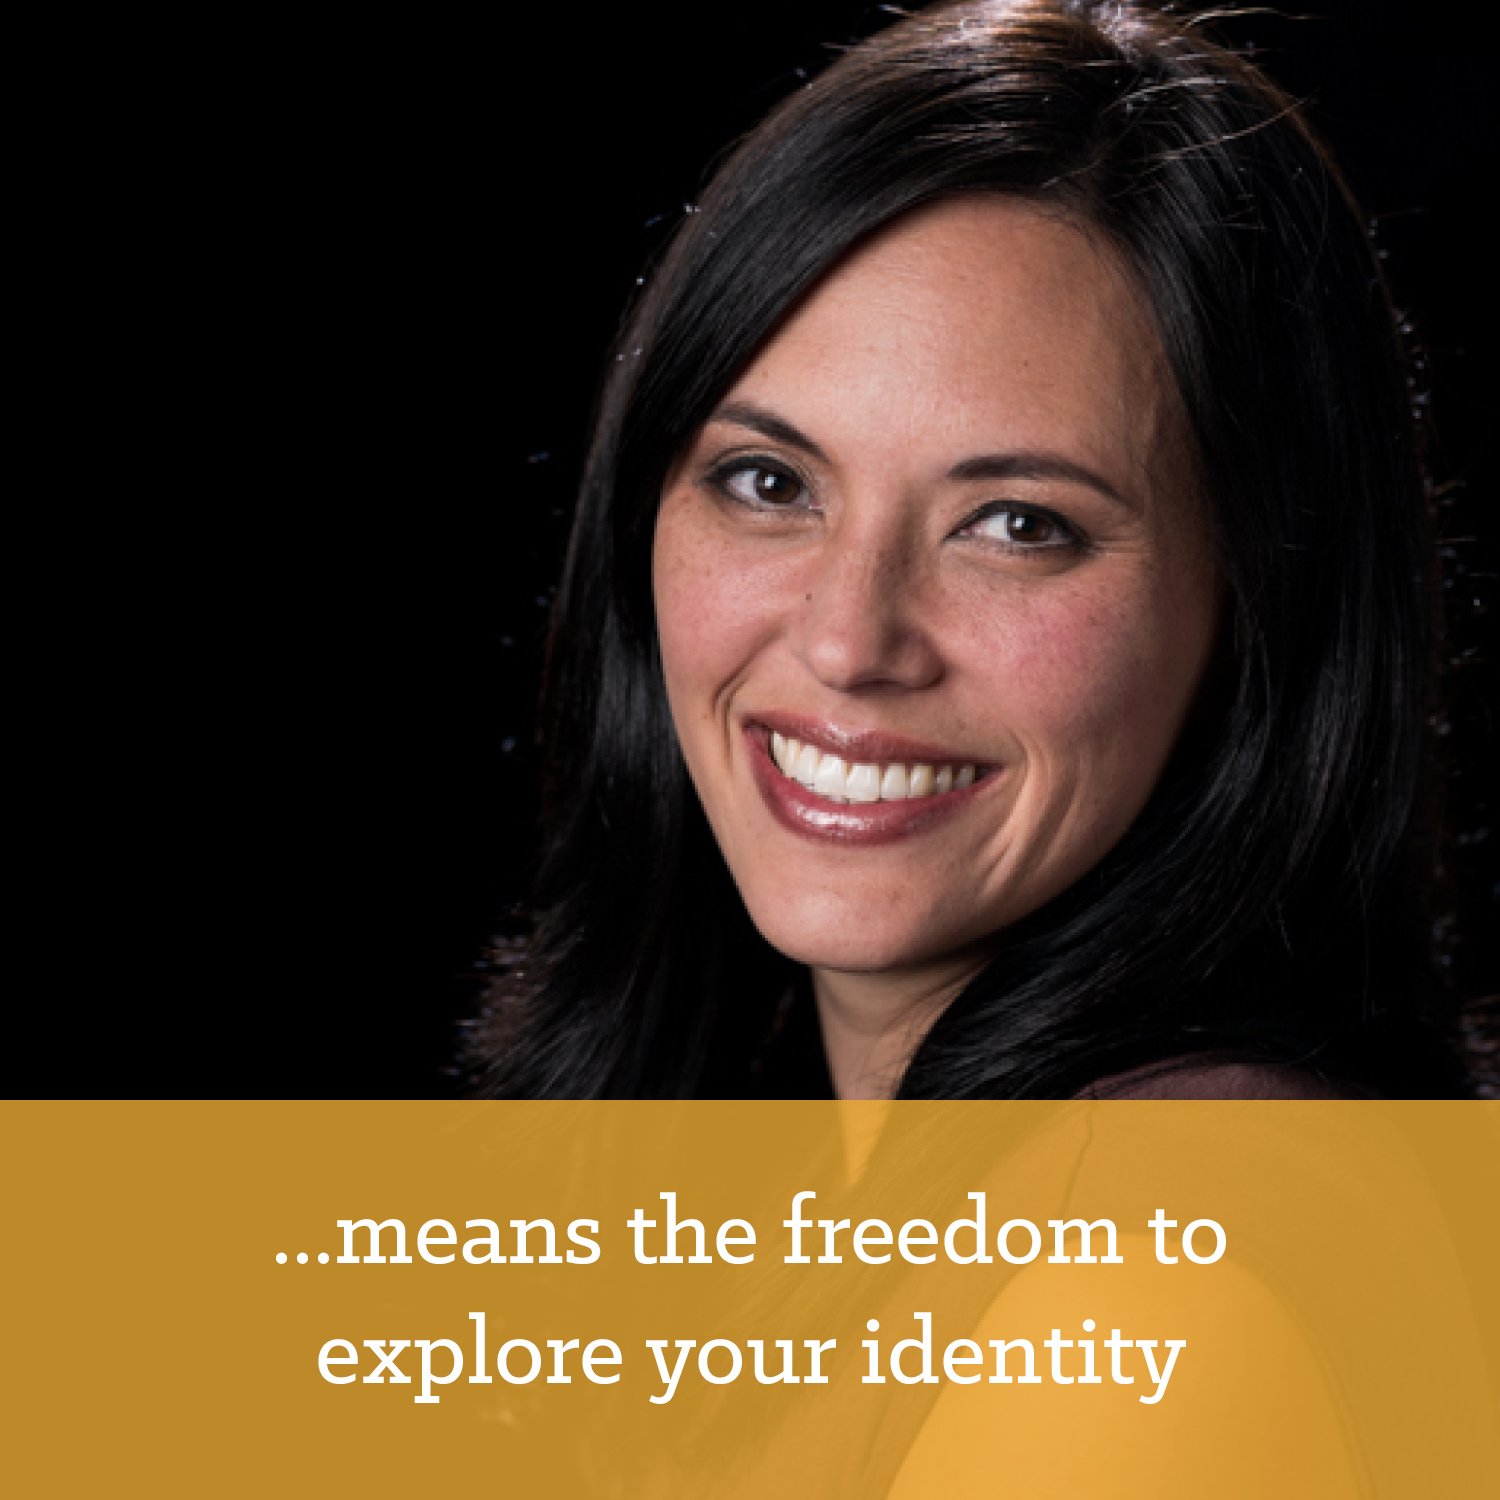 Freedom to explore your identity